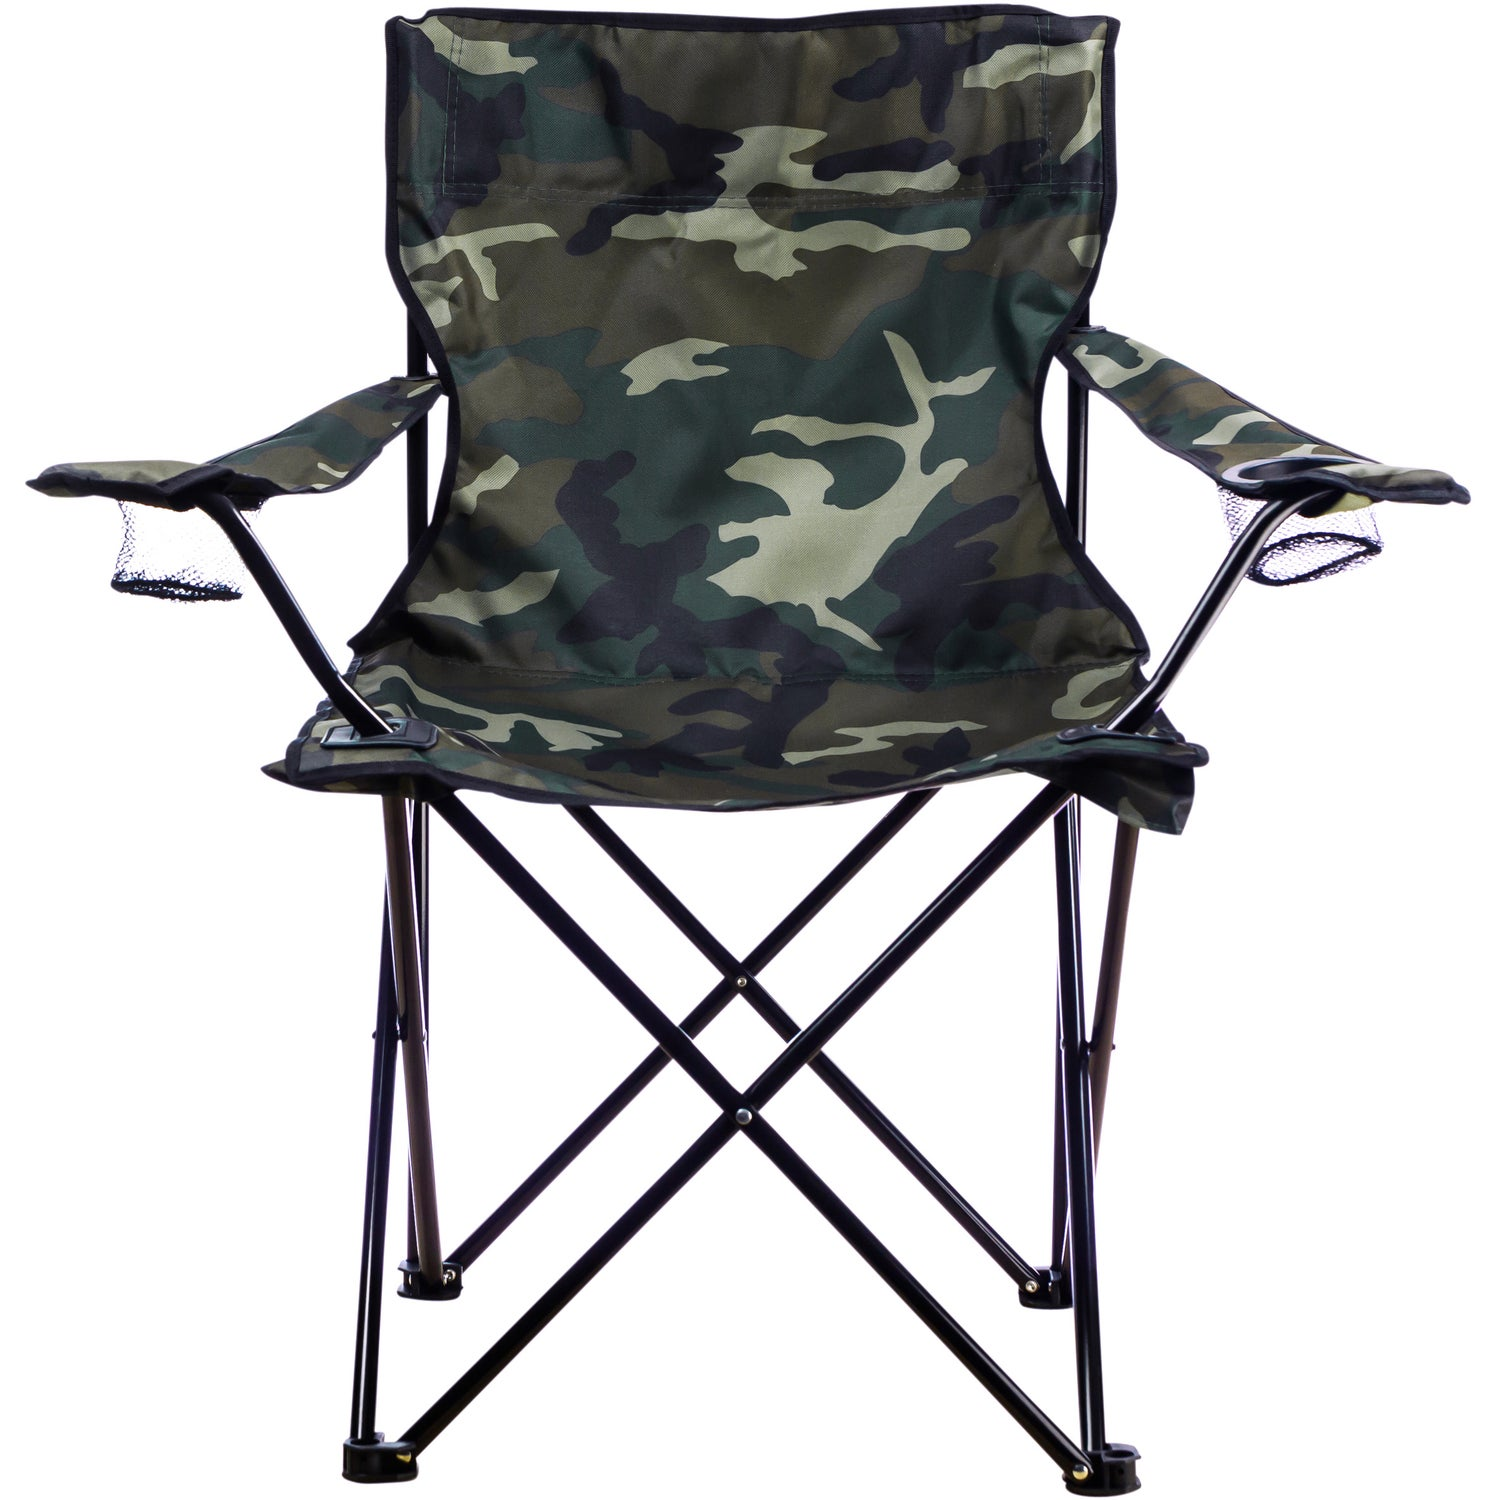 Elegant Promotional Camo Folding Chair With Carrying Bags With Custom Logo For  $11.45 Ea.